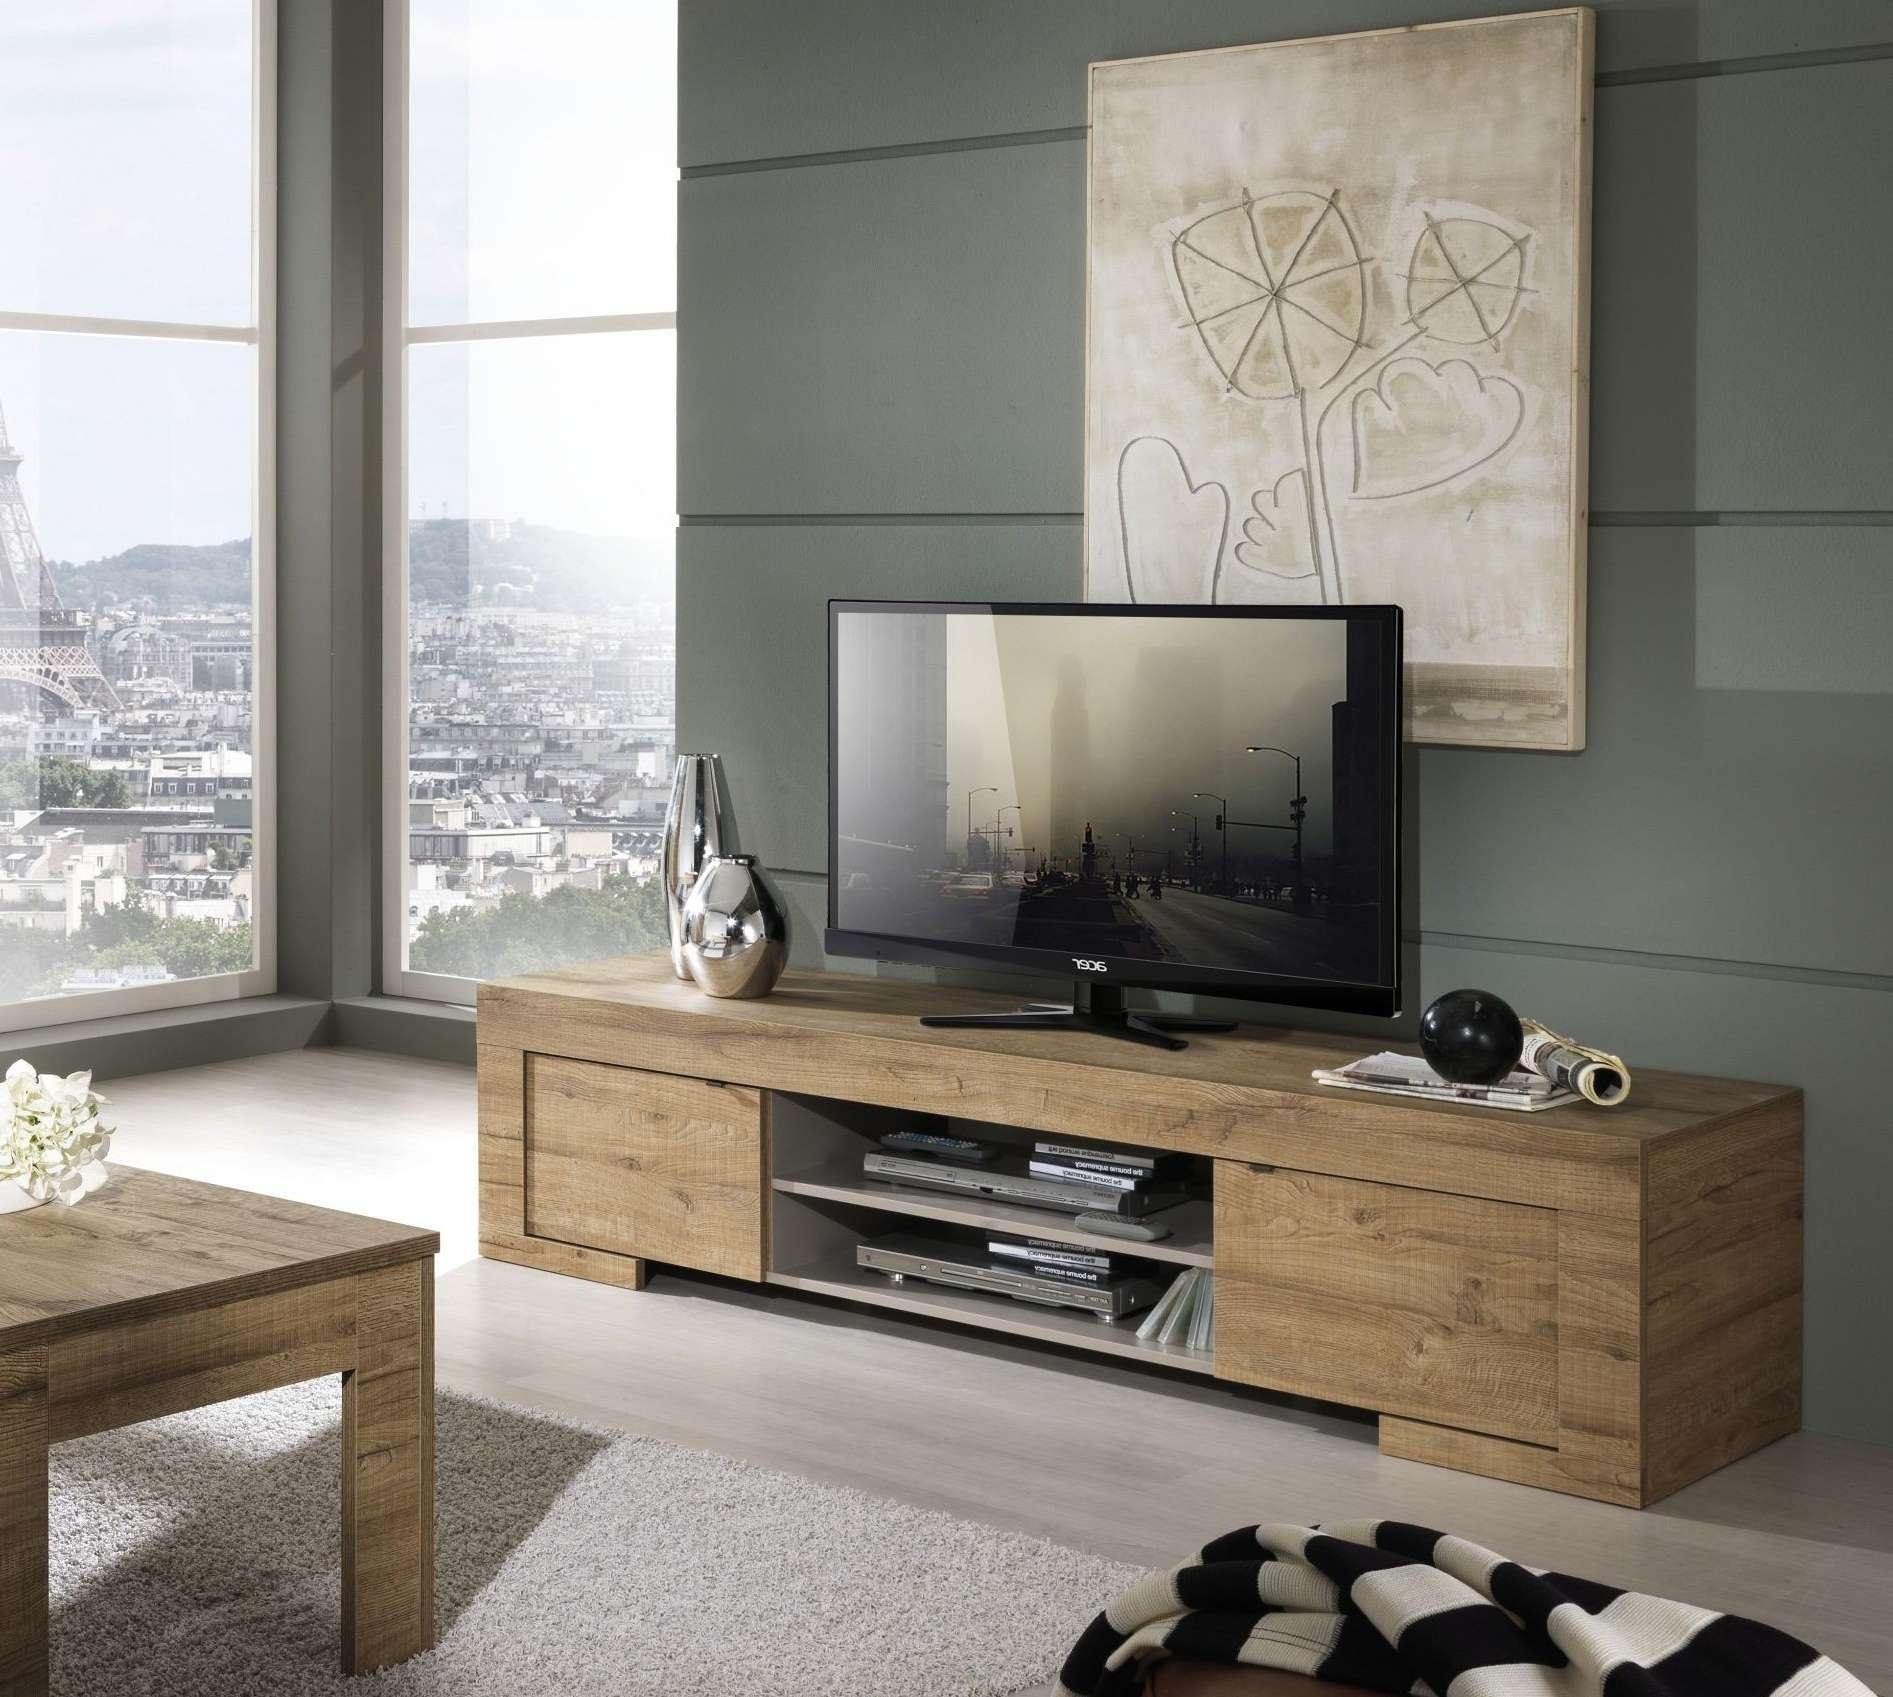 Milano Tv Stand Buy Online At Best Price – Sohomod For Milano Tv Stands (View 13 of 20)